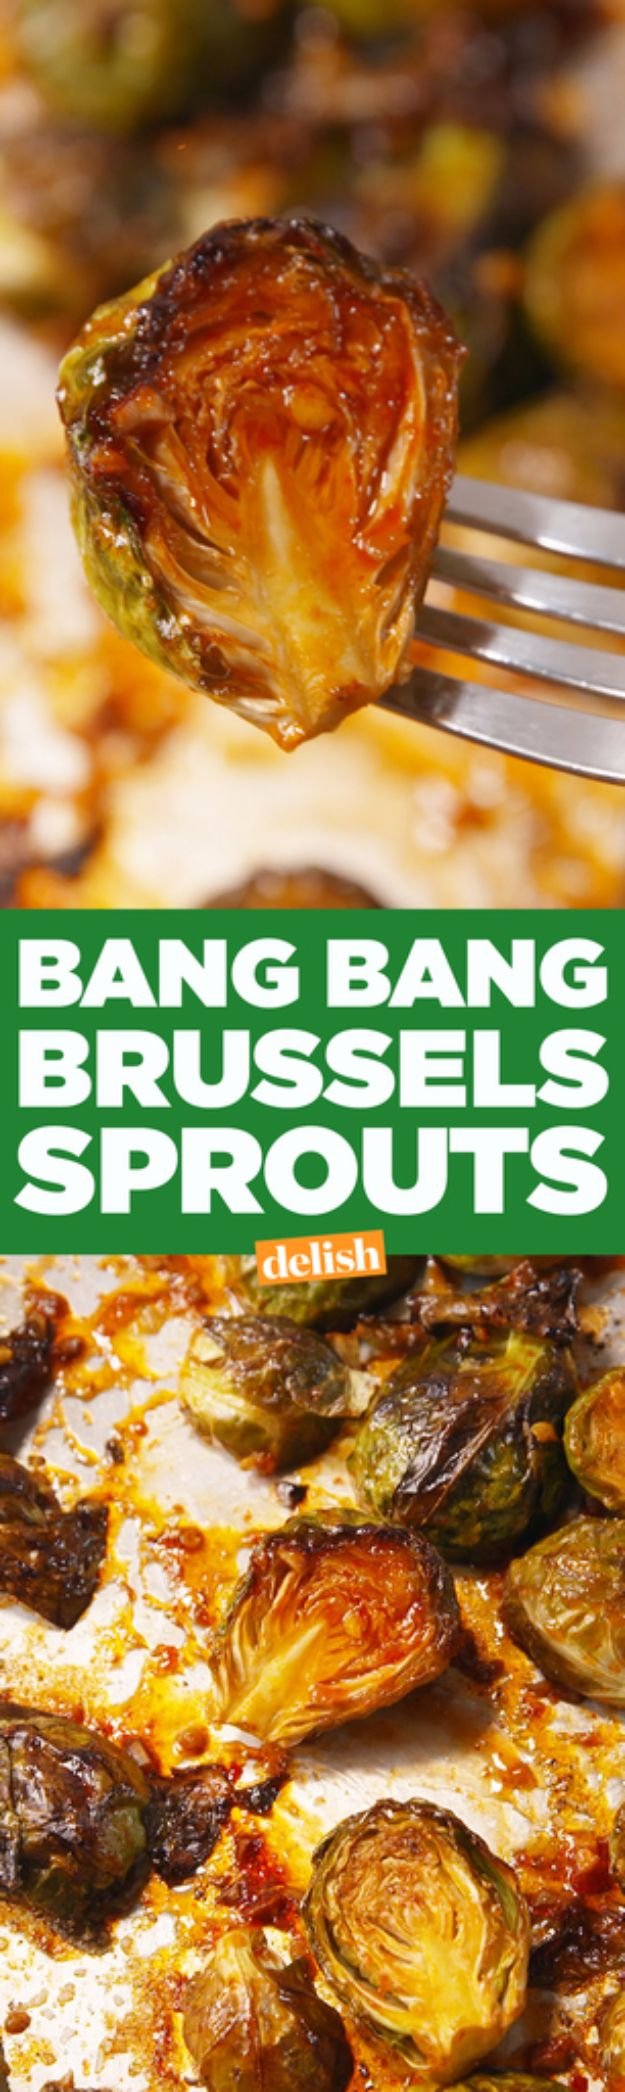 Best Brussel Sprout Recipes - Bang Bang Brussels Sprouts - Easy and Quick Delicious Ideas for Making Brussel Sprouts With Bacon, Roasted, Creamy, Healthy, Baked, Sauteed, Crockpot, Grilled, Shredded and Salad Recipe Ideas #recipes